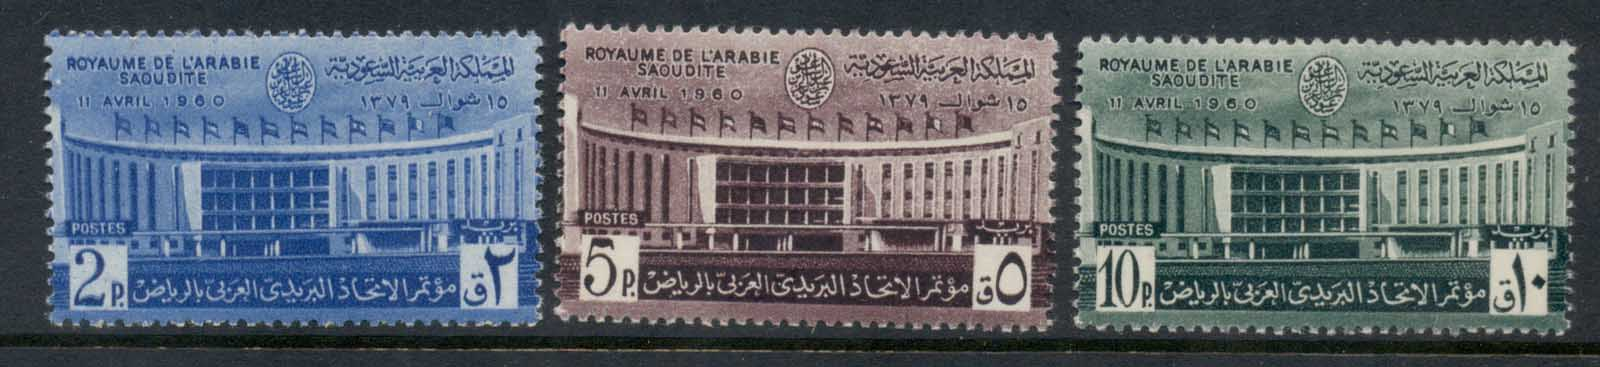 Saudi Arabia 1960 Ministry of Communications MUH